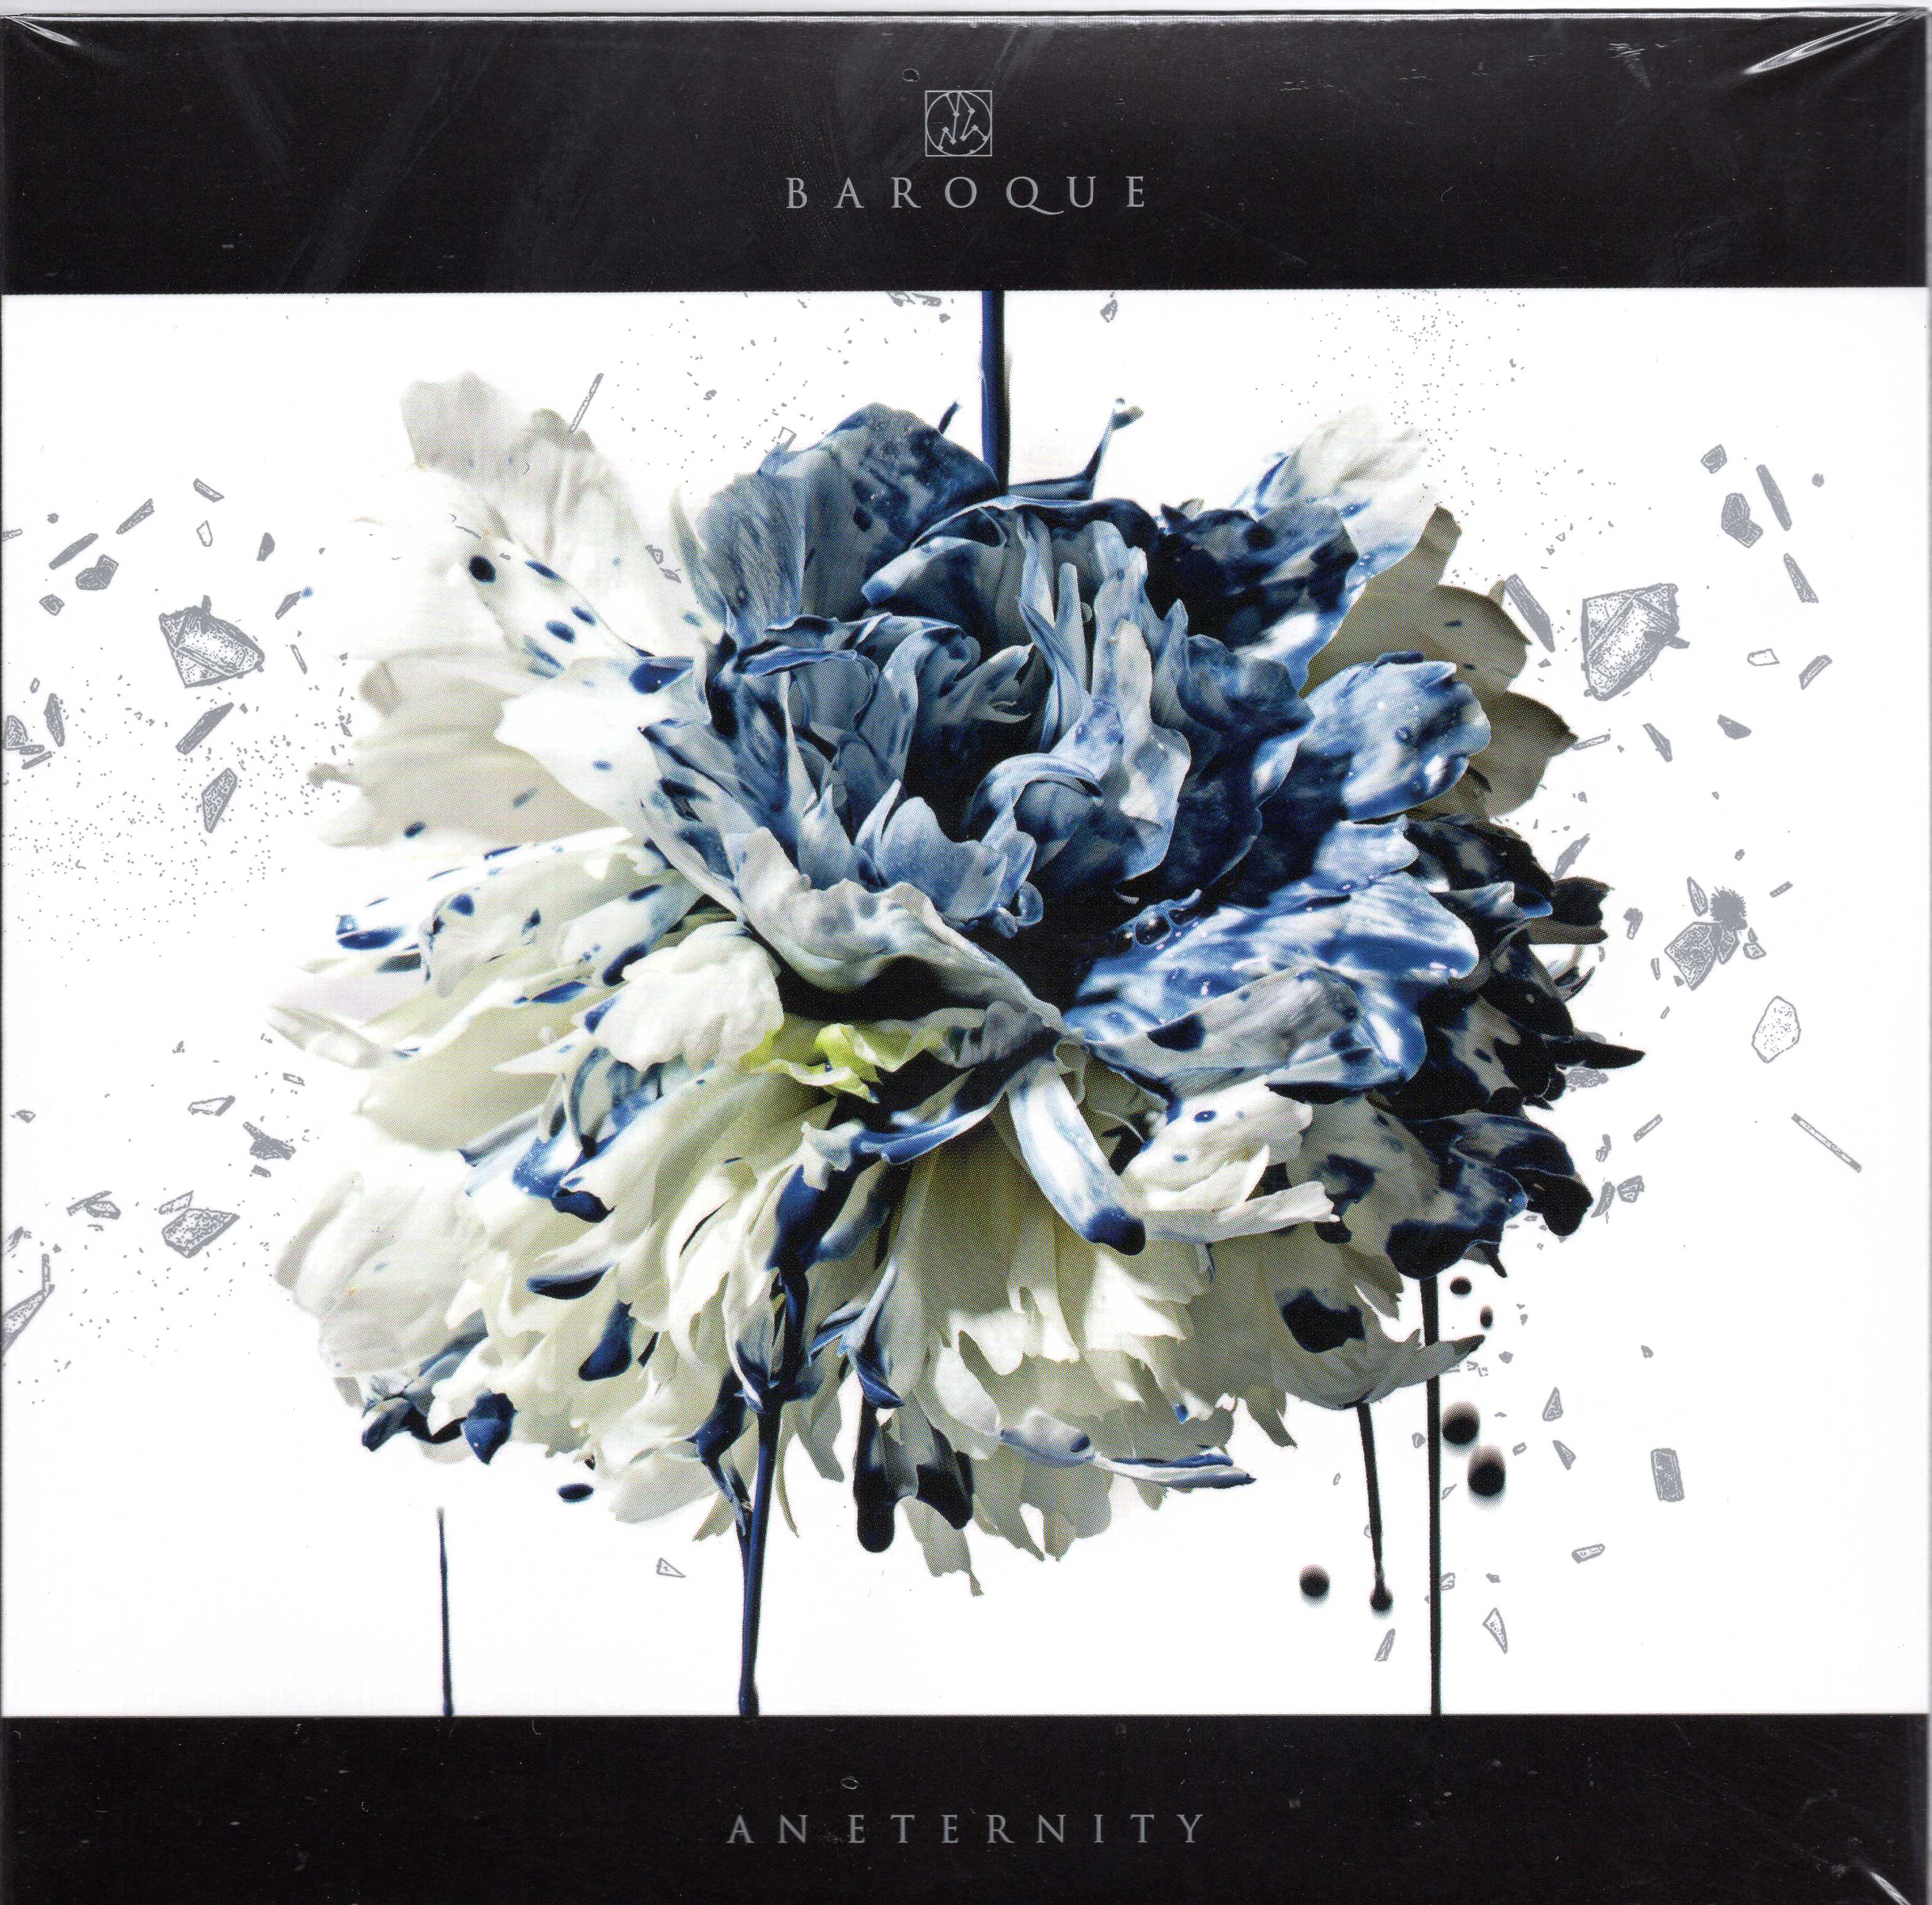 BAROQUE ( バロック )  の CD AN ETERNITY